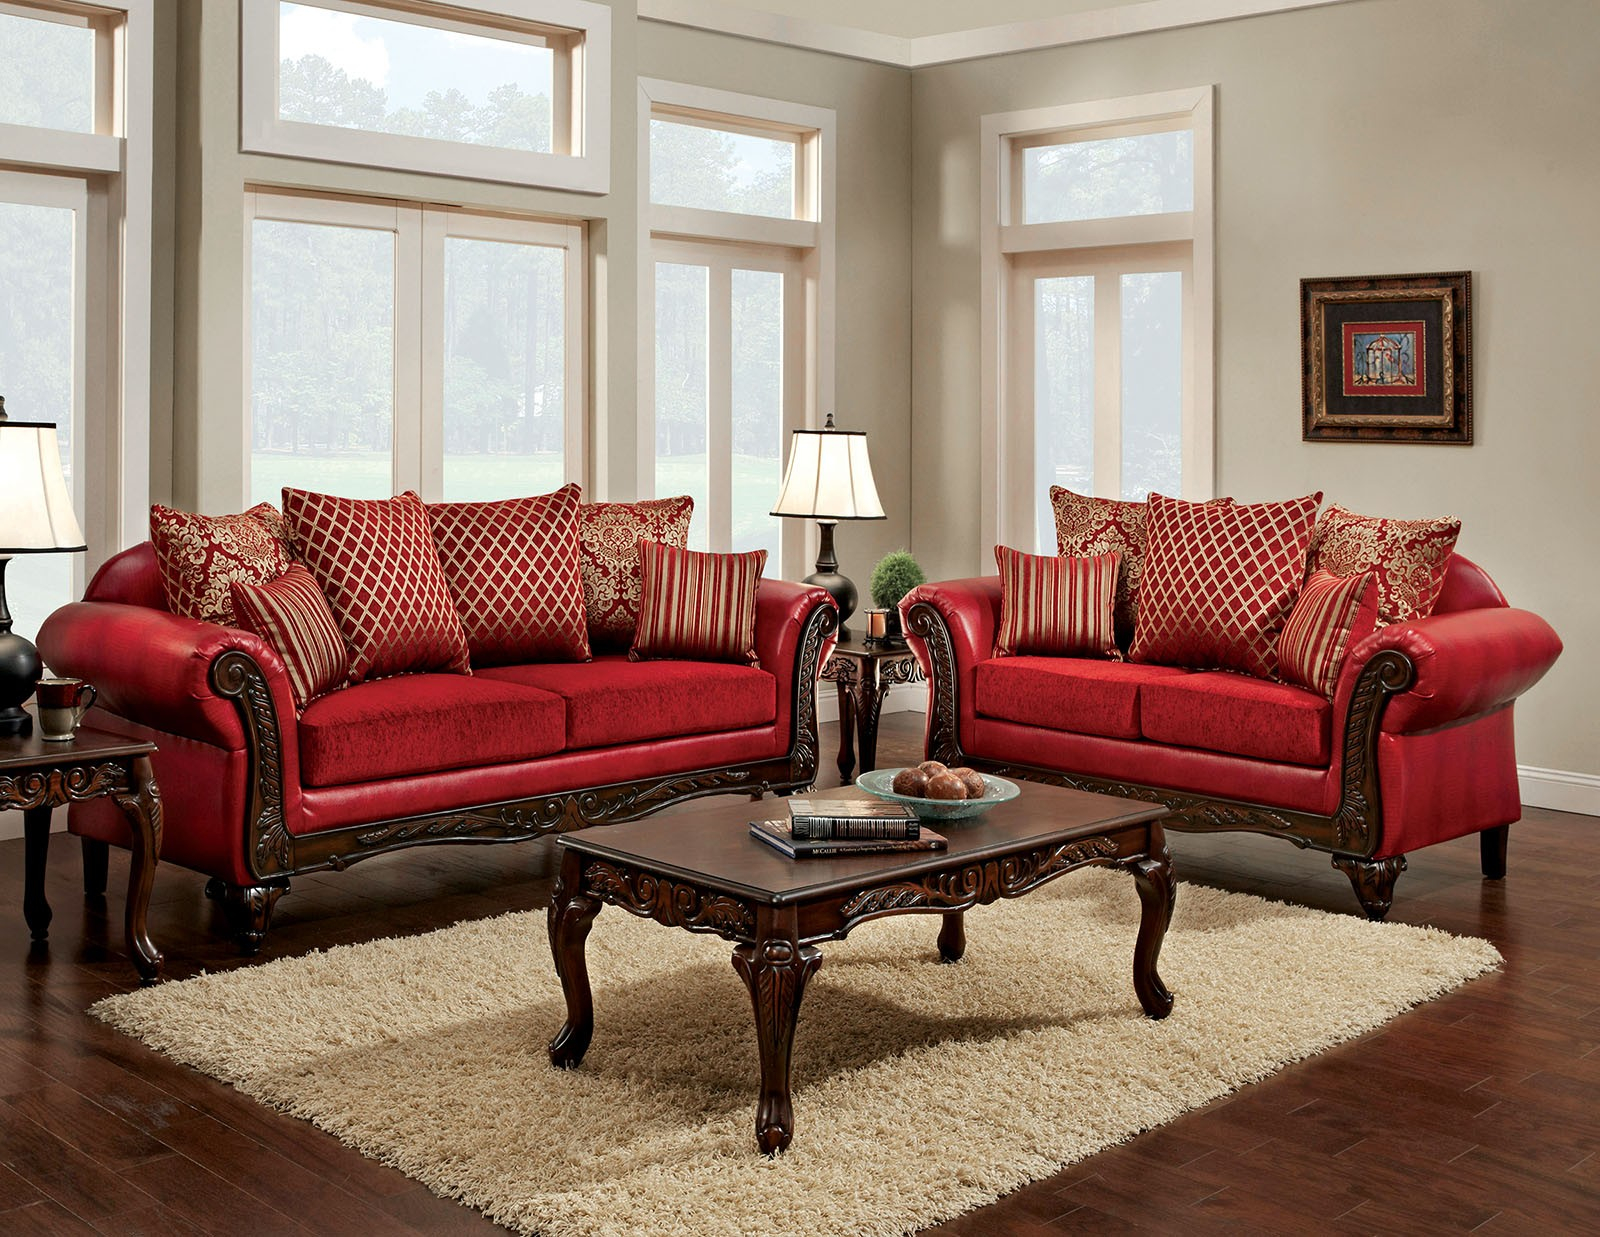 Furniture Of America Marcus Red Living Room Set Marcus Collection within 15 Awesome Designs of How to Makeover Free Living Room Set